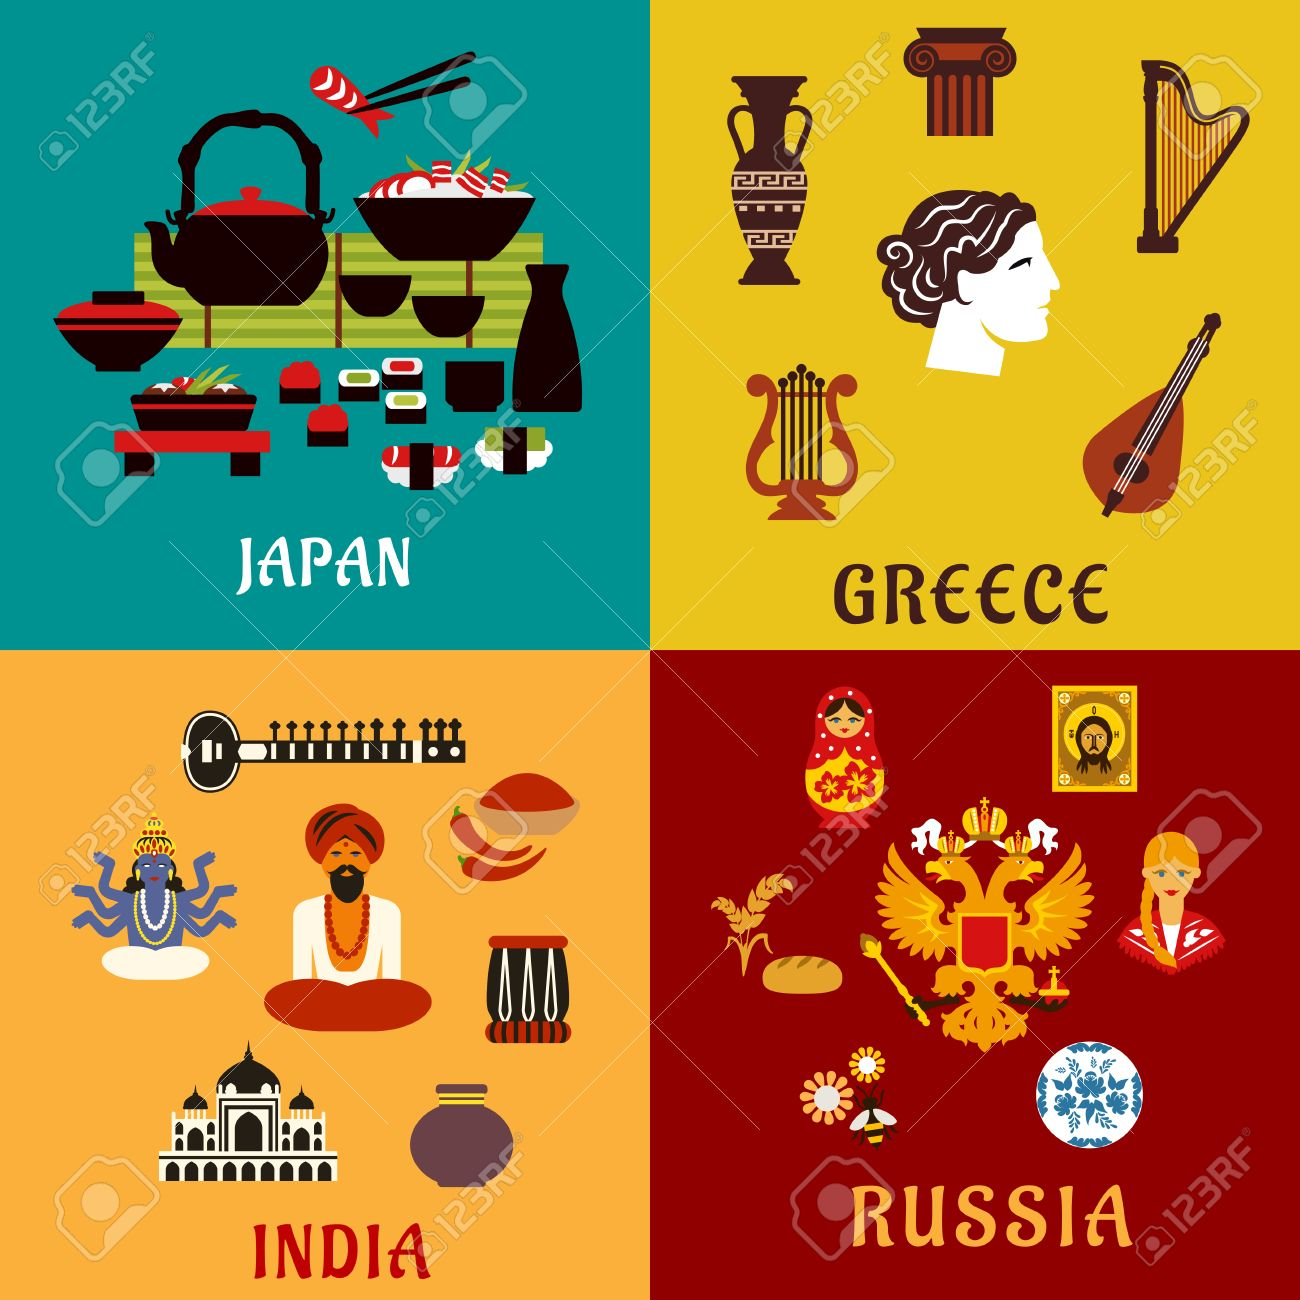 National Culture Religion And Cuisine Of Japan Russia India And